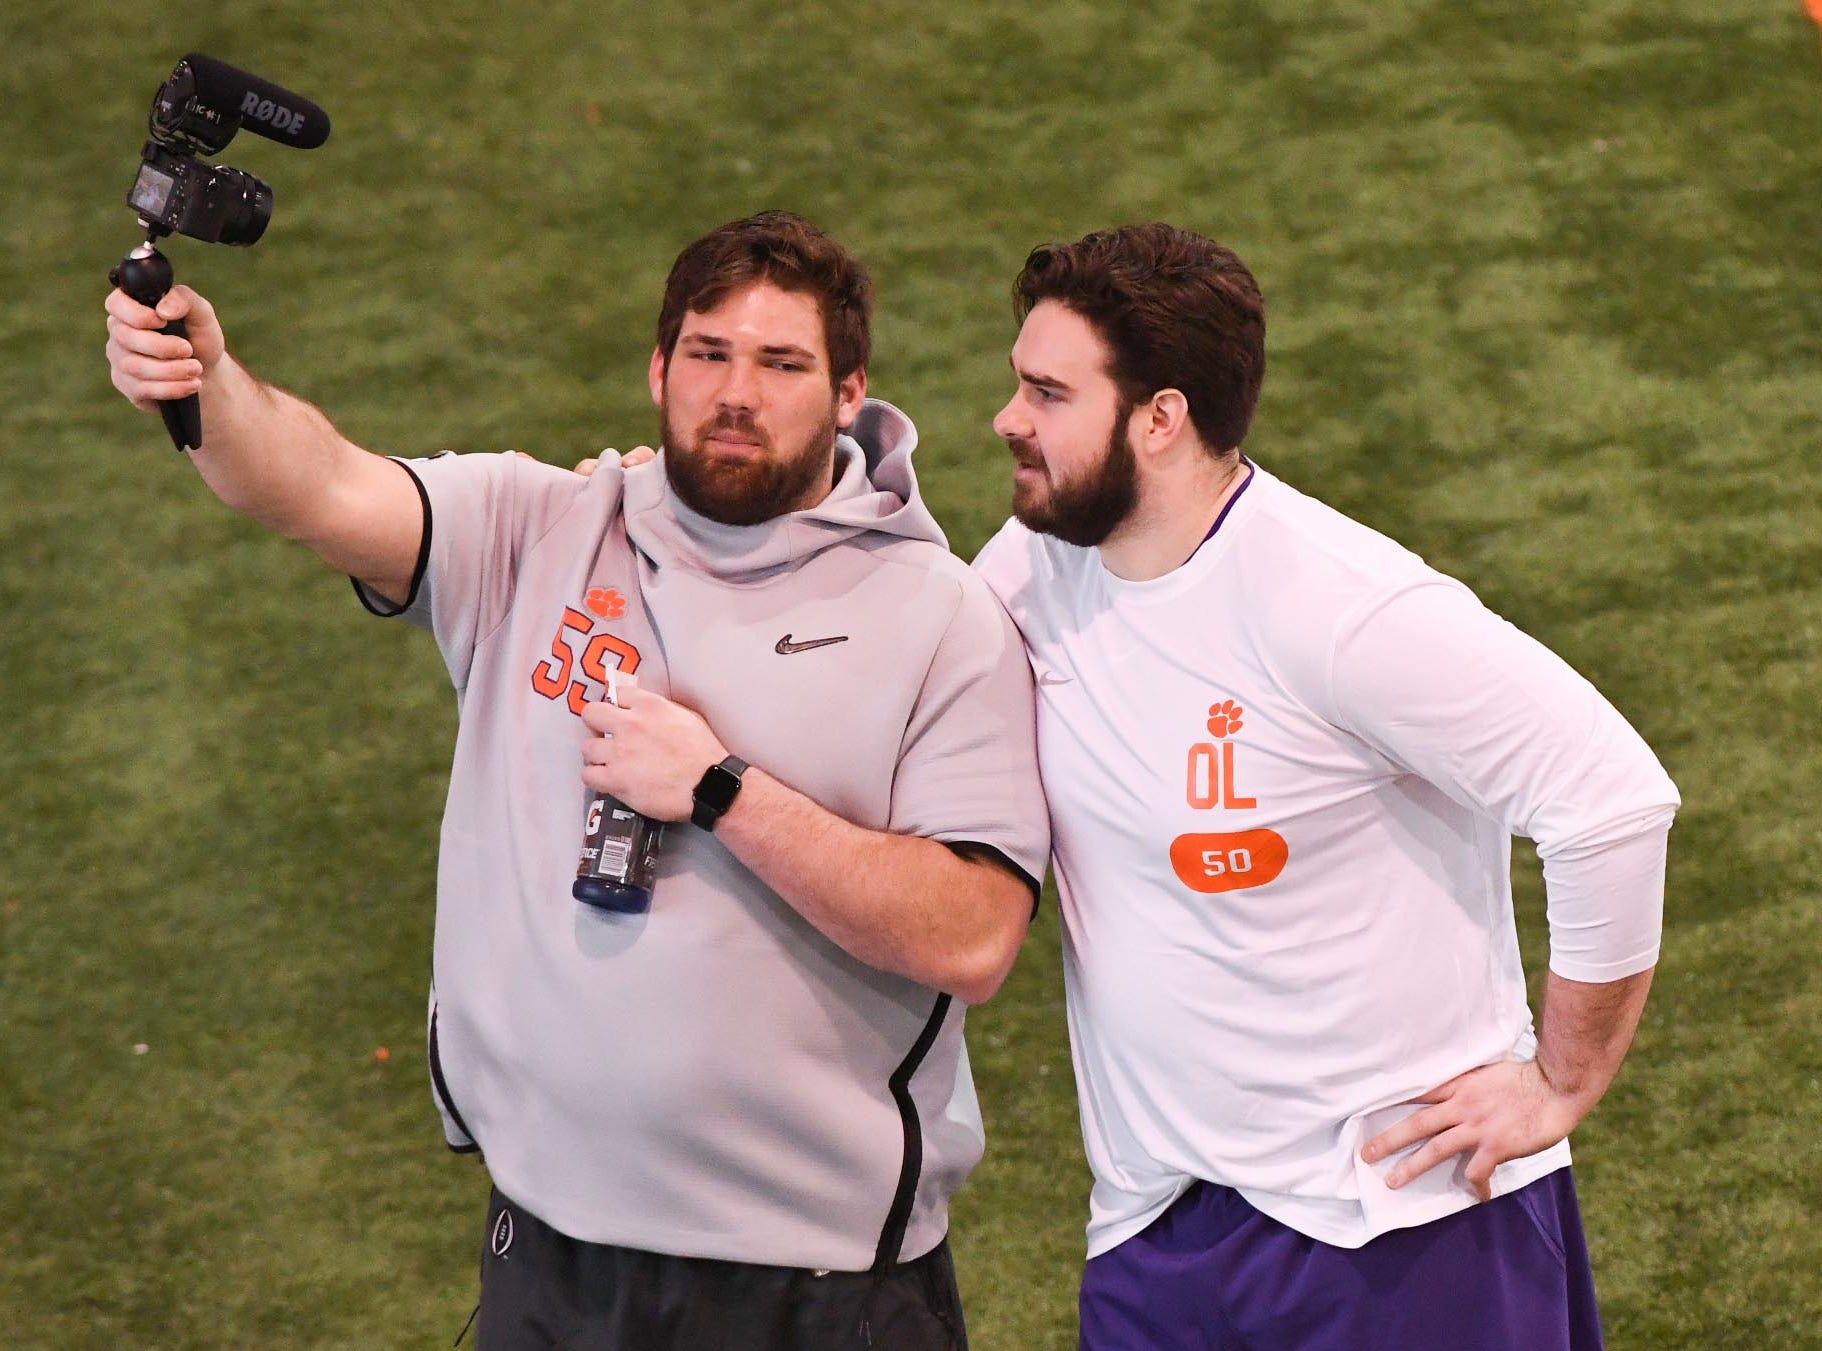 Clemson lineman Gage Cervenka, left, get video of himself and pro prospect offensive lineman Justin Falcenli during Clemson pro day at the Poe Indoor Facility in Clemson Thursday, March 14, 2019.